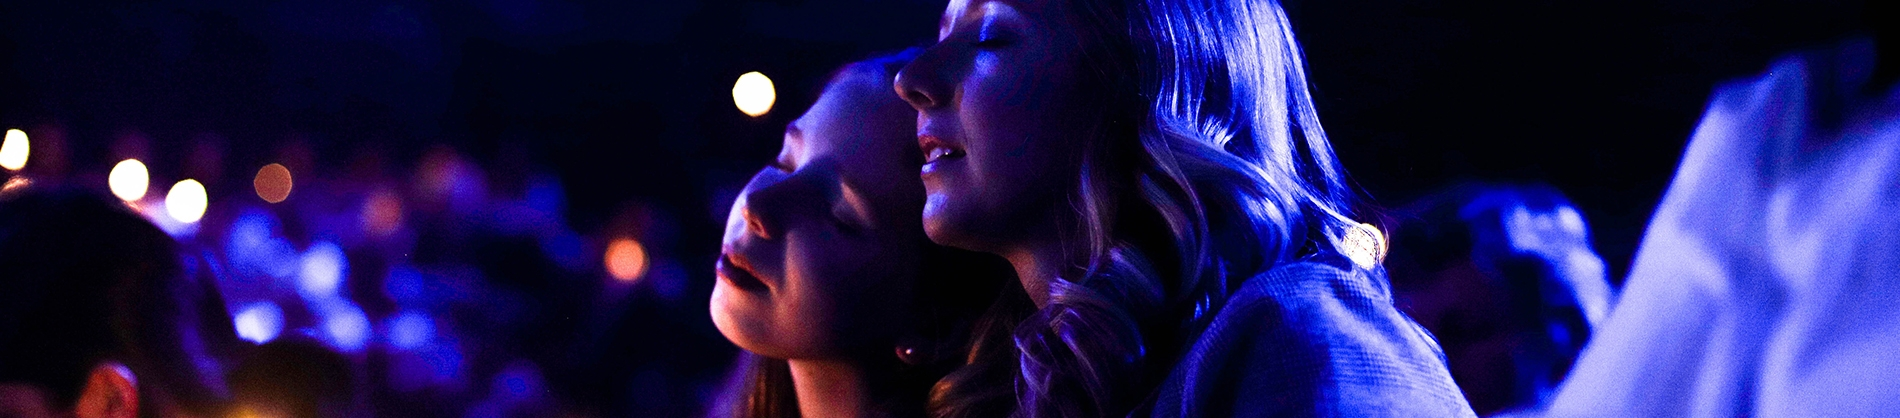 Two women with their eyes closed in worship